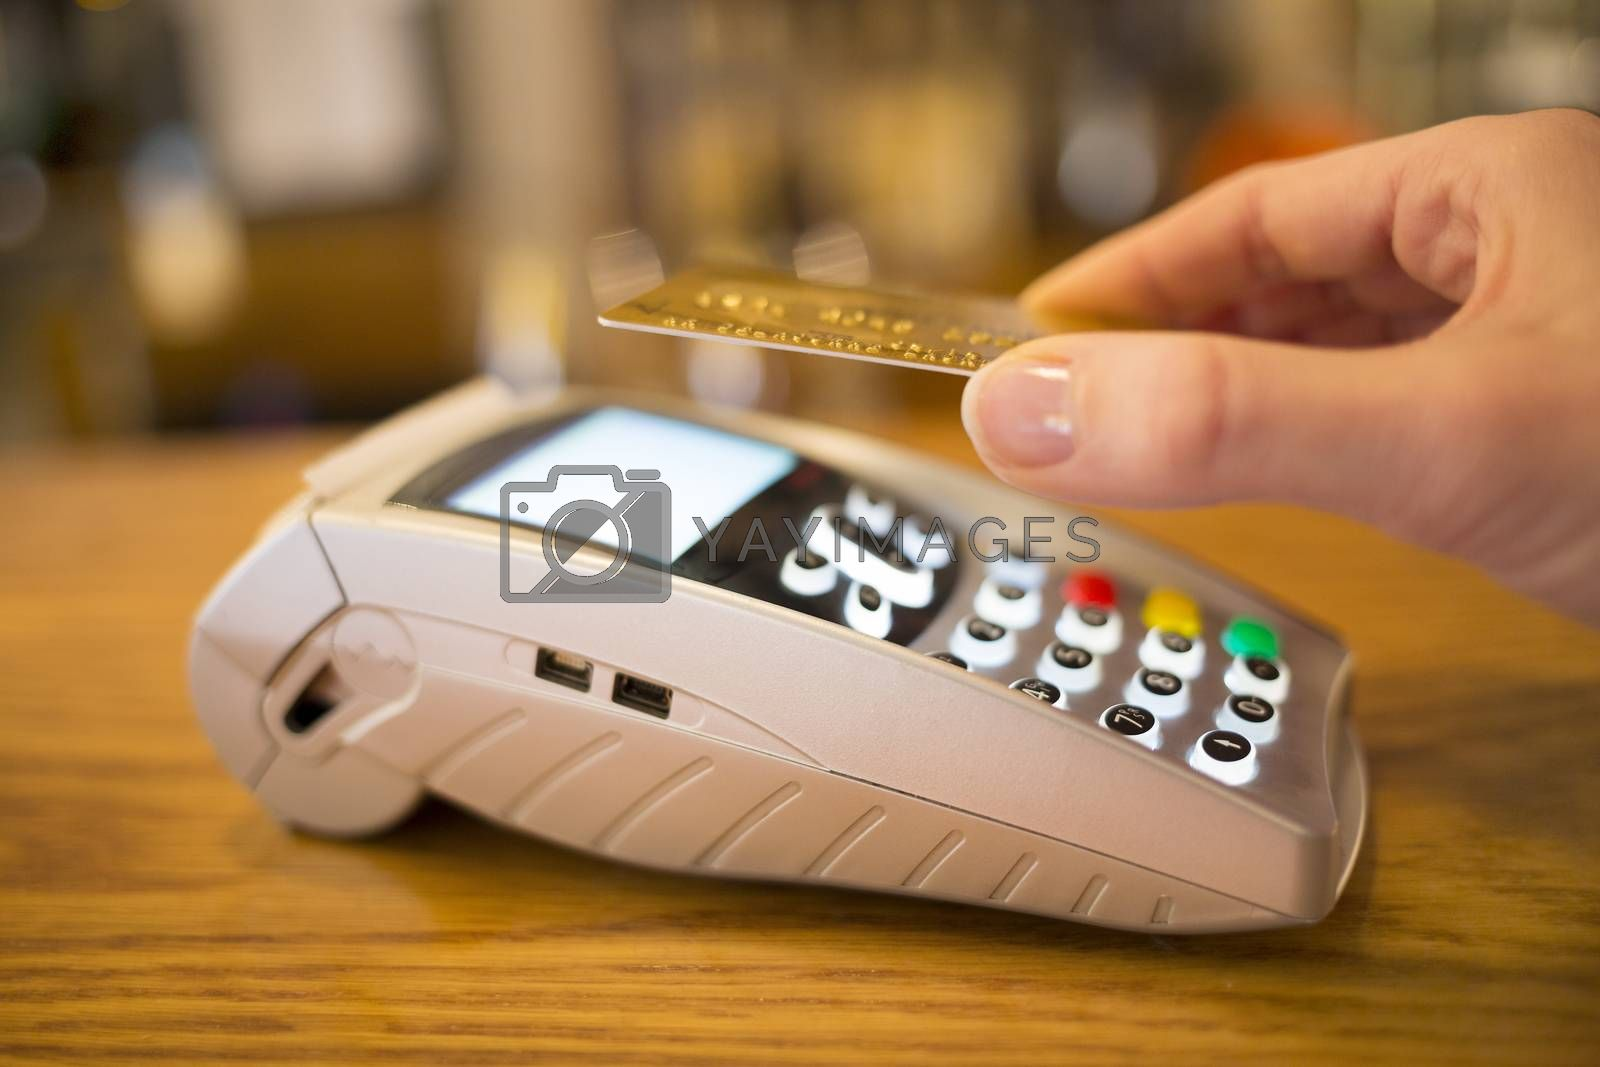 Woman paying with NFC technology on credit card, restaurant, sho by LDProd